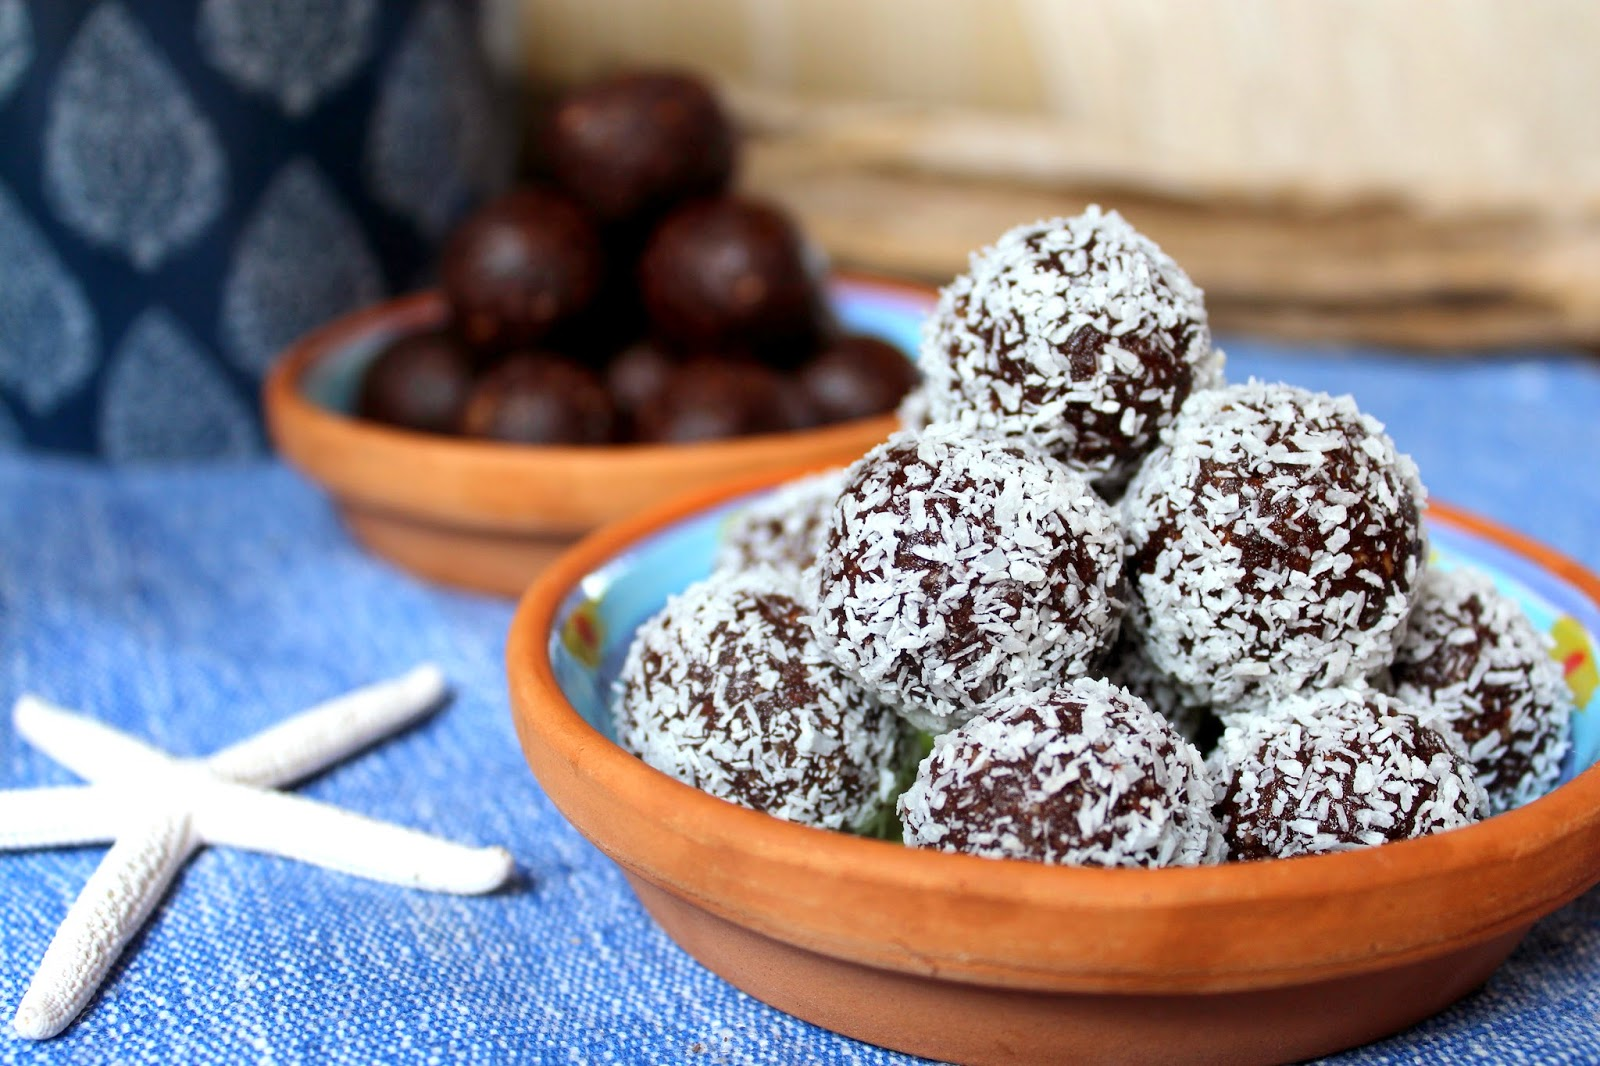 Coastal styling and craft ideas desire empire - Vegan Chocolate And Date Balls With Coconut